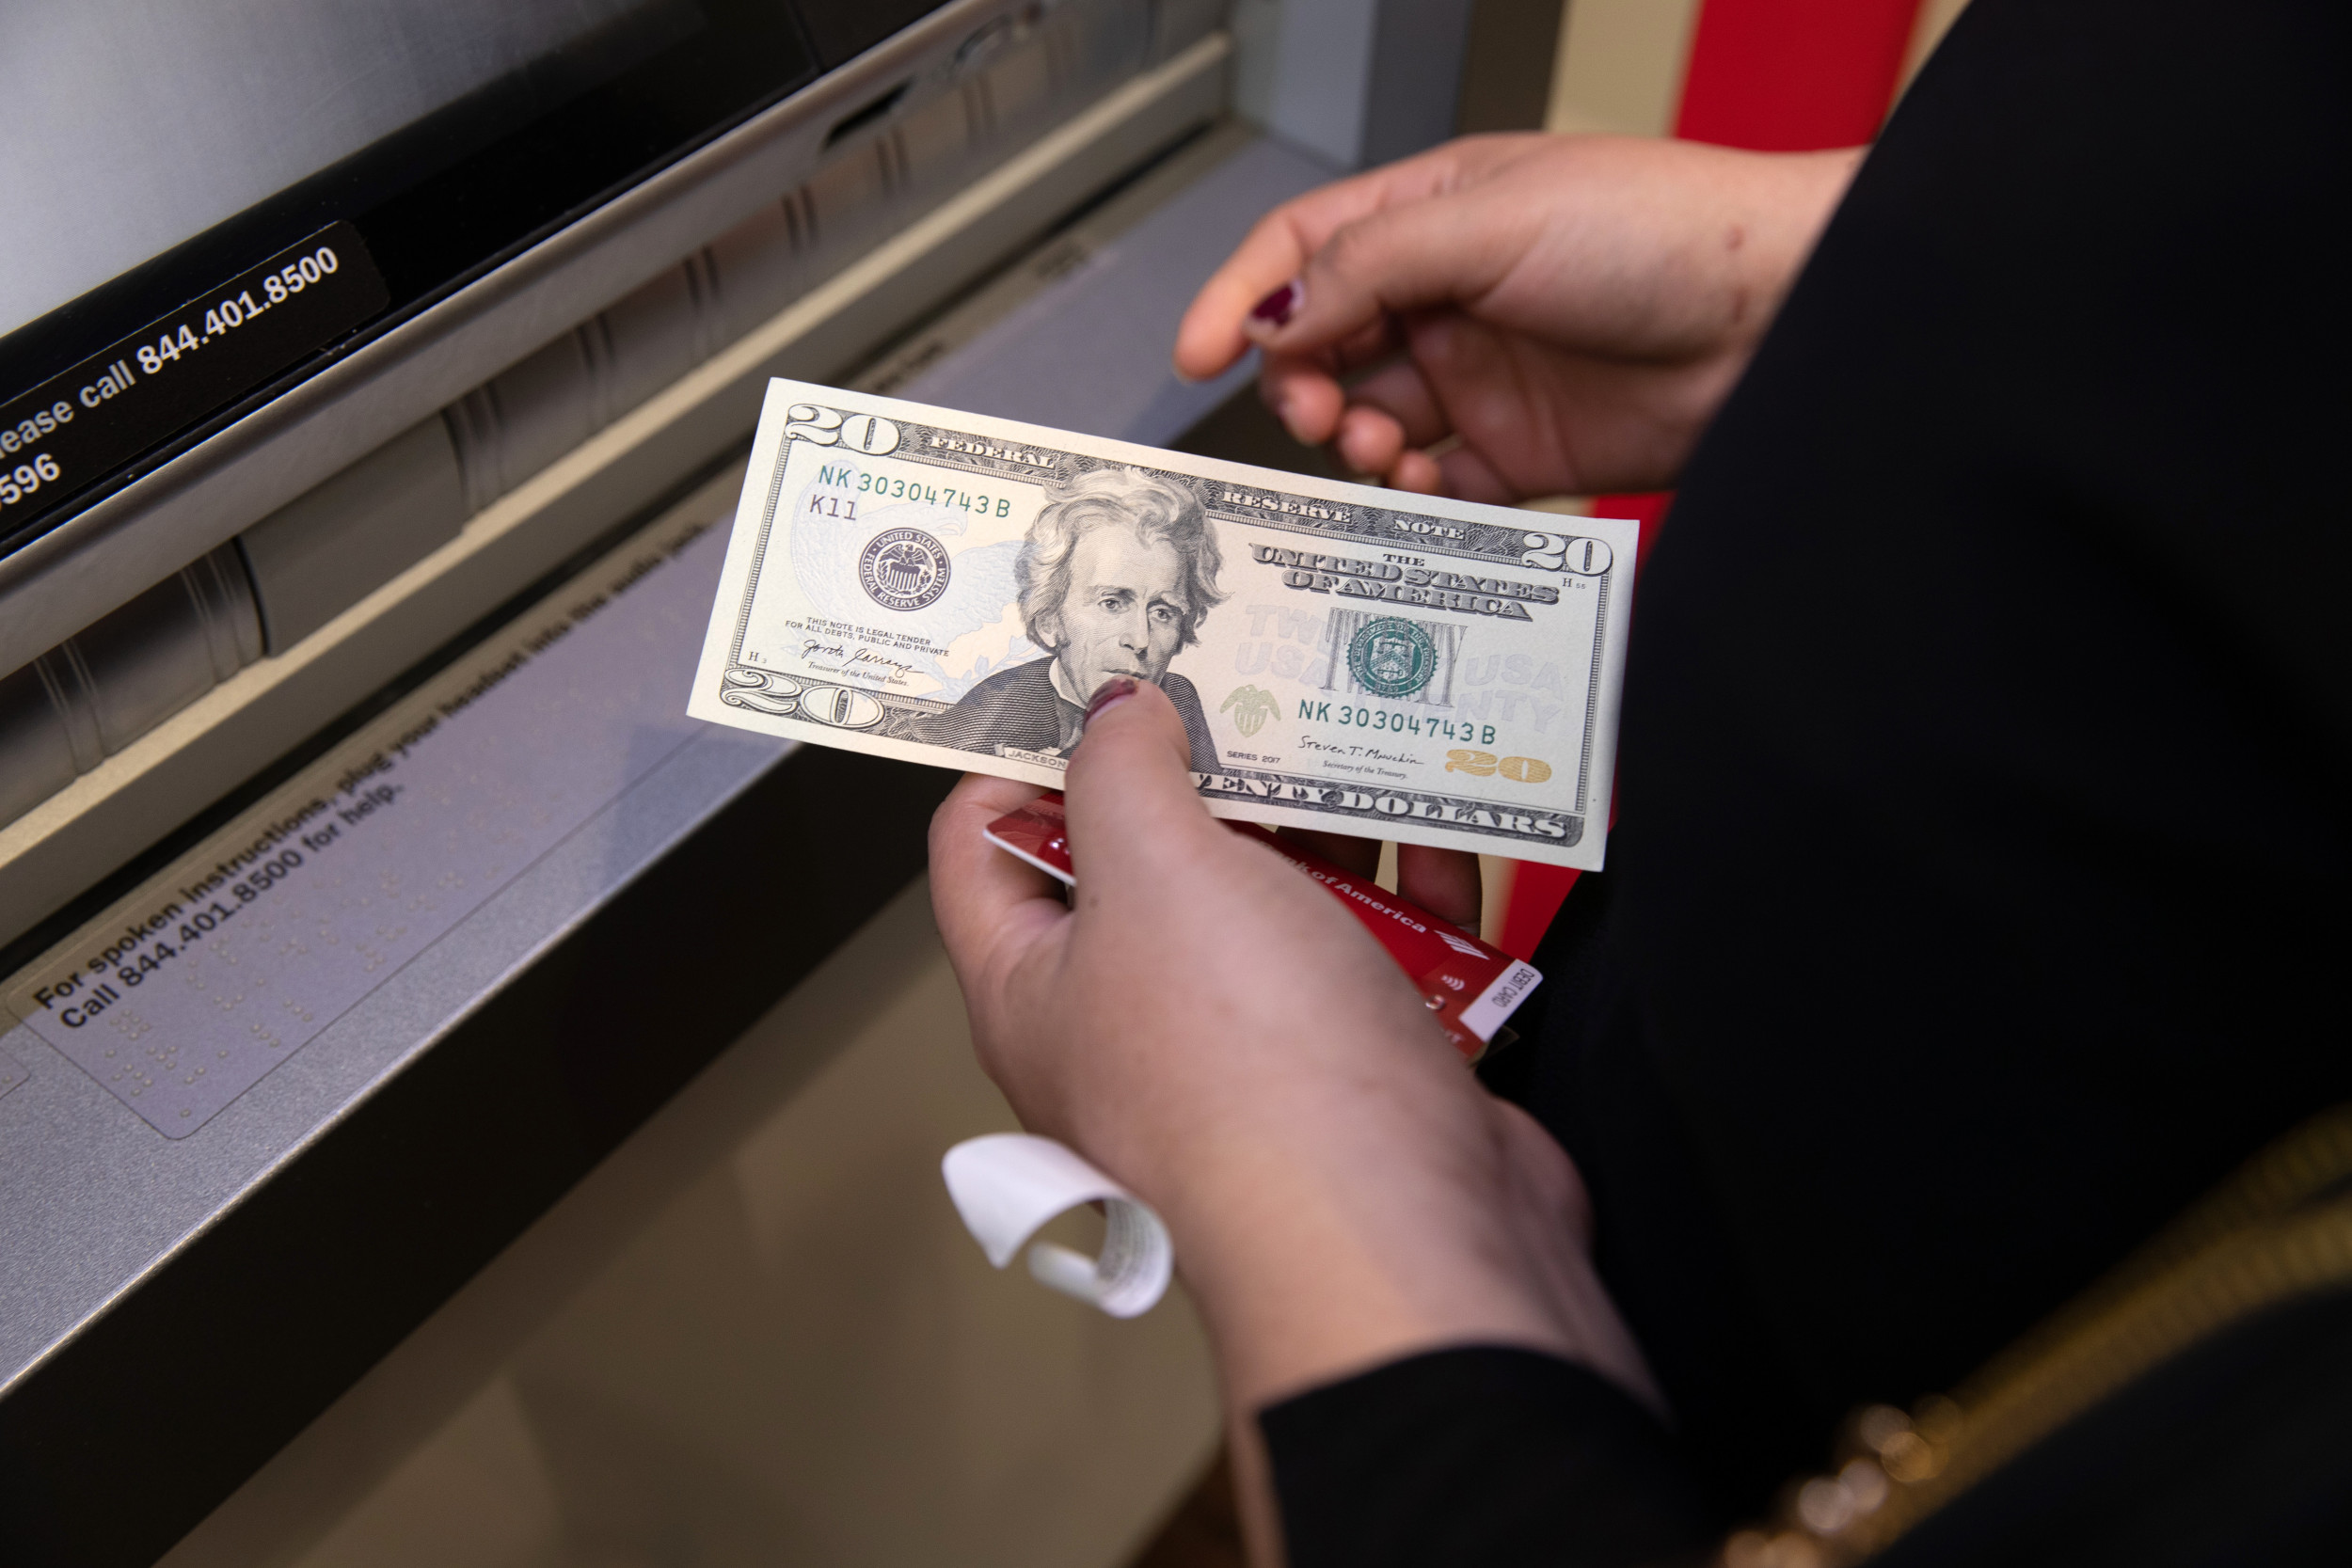 Interest checking account fees, overdraft charges hit record high